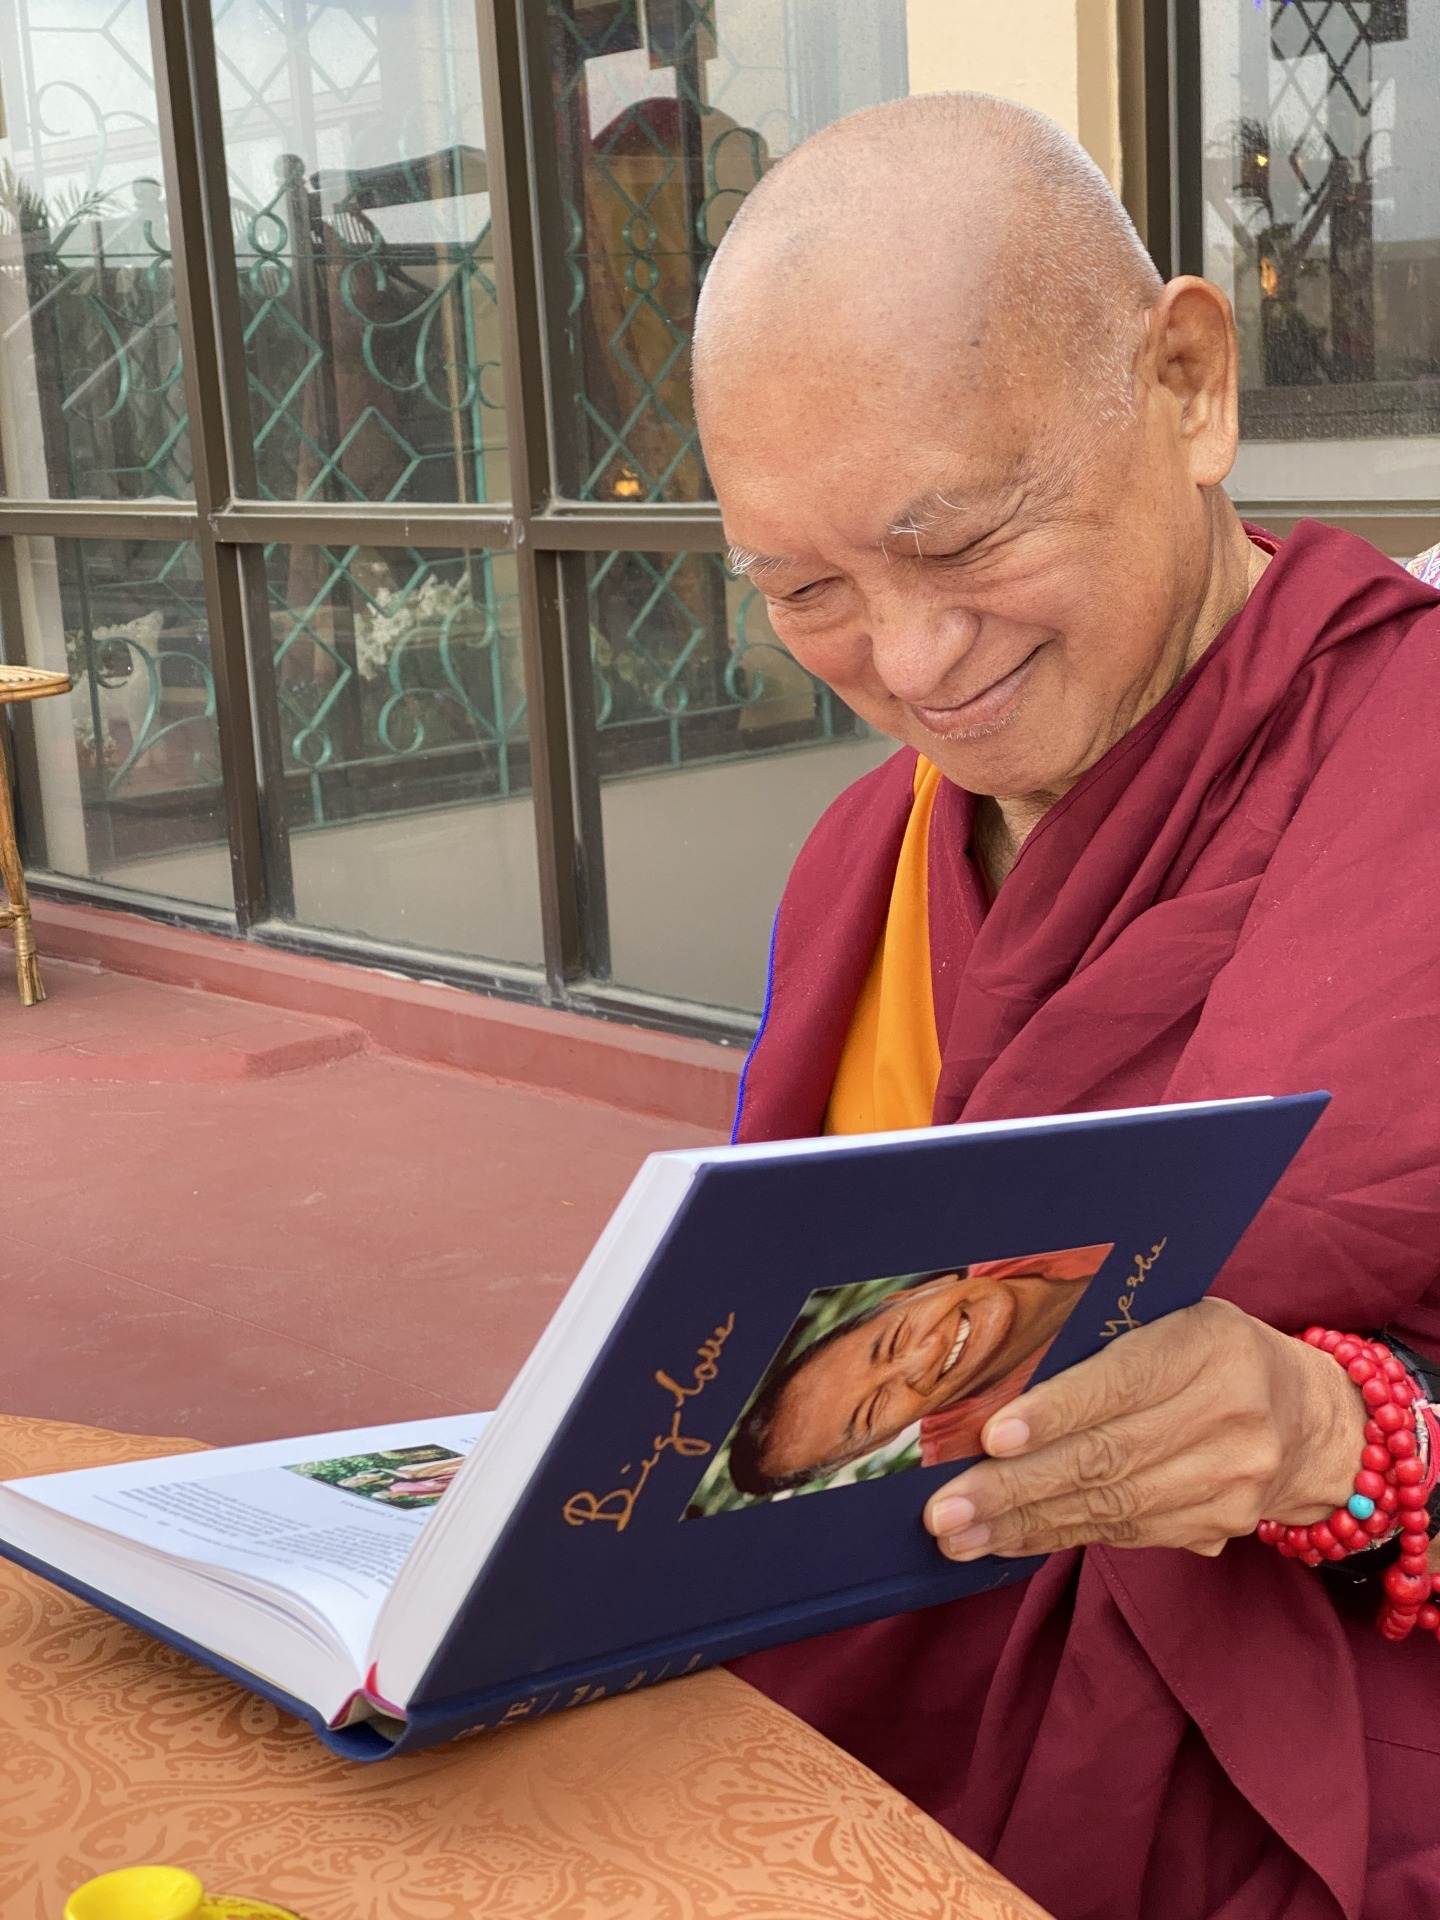 Welcome to the April FPMT e-News